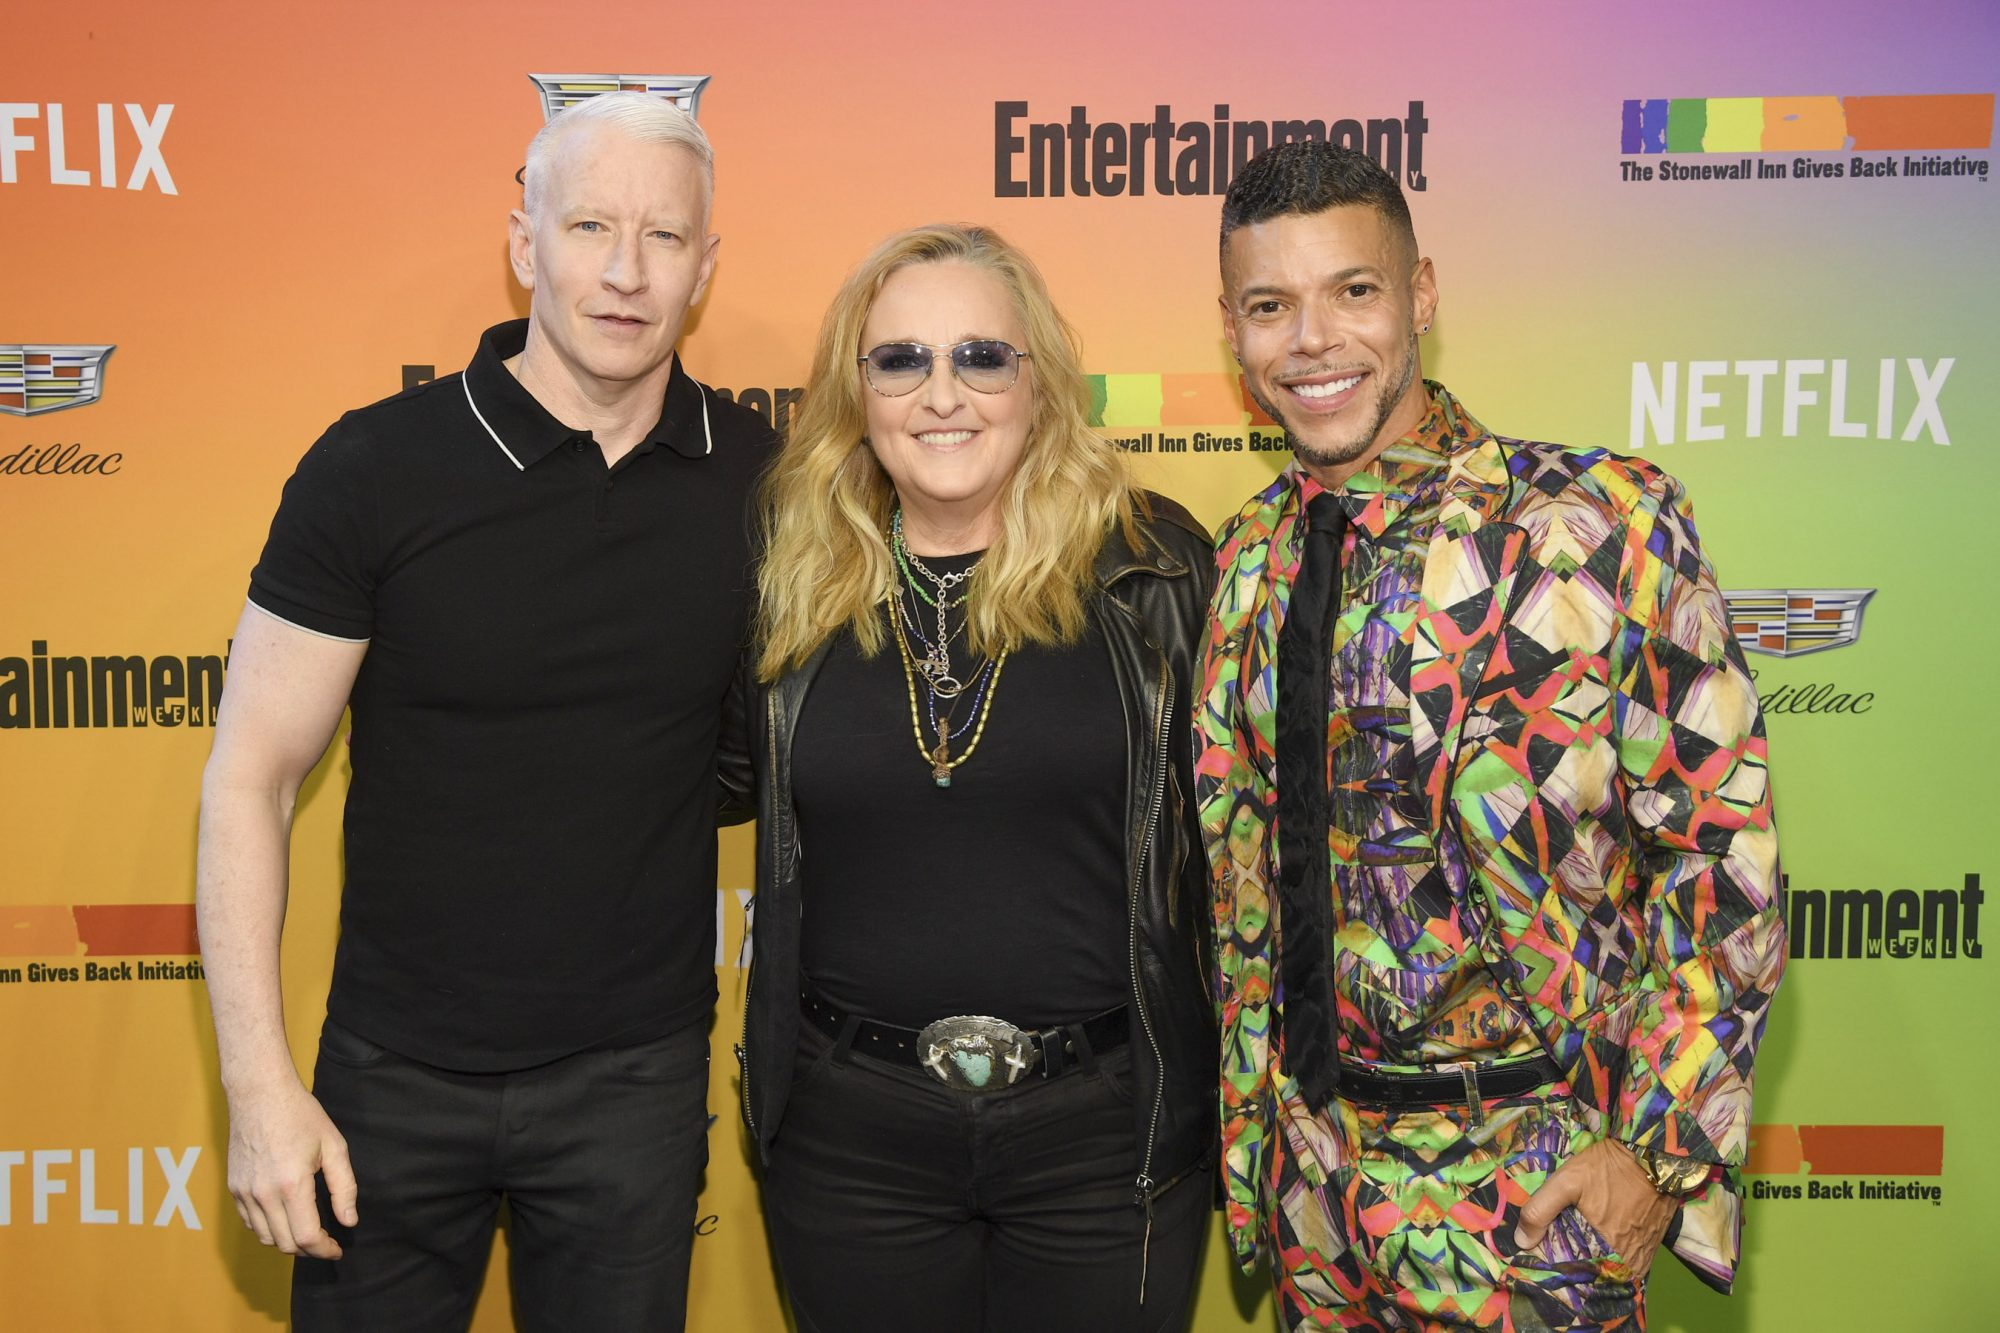 NEW YORK, NEW YORK - JUNE 05: (L-R) Anderson Cooper, Wilson Cruz and Melissa Etheridge attend as Entertainment Weekly Celebrates Its Annual LGBTQ Issue at the Stonewall Inn on June 05, 2019 in New York City. (Photo by Dimitrios Kambouris/Getty Images for Entertainment Weekly)